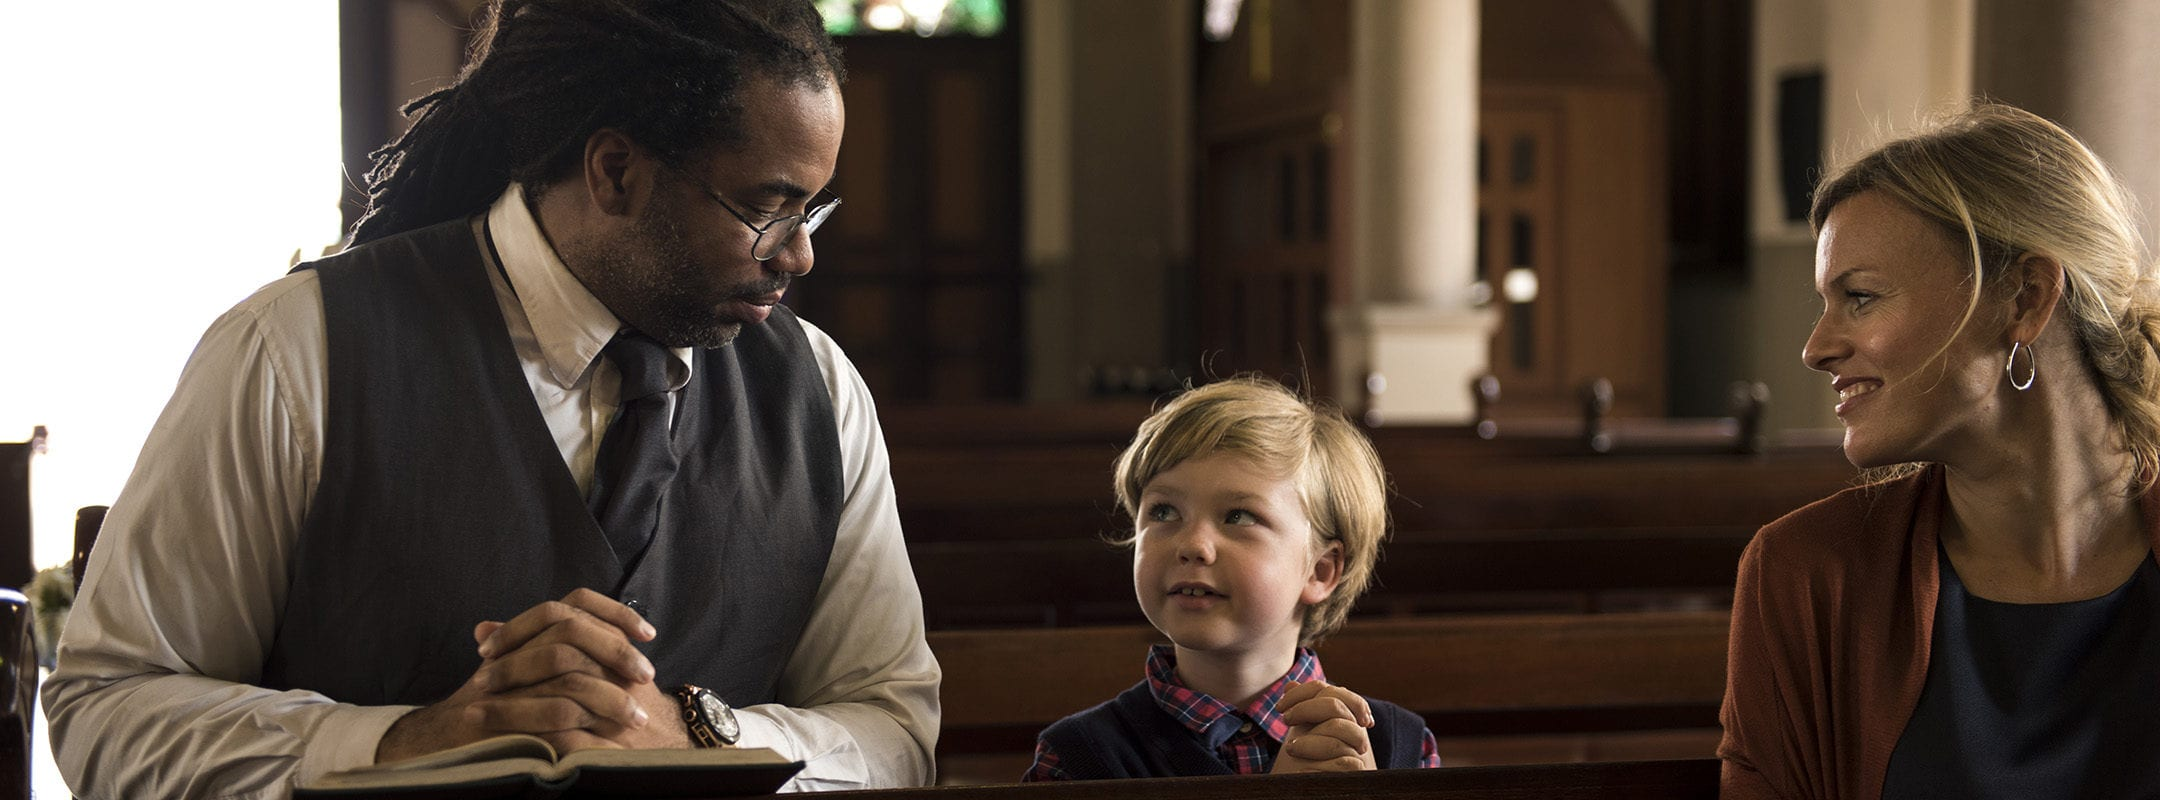 A mom and her son in a church pew speaking with a minister